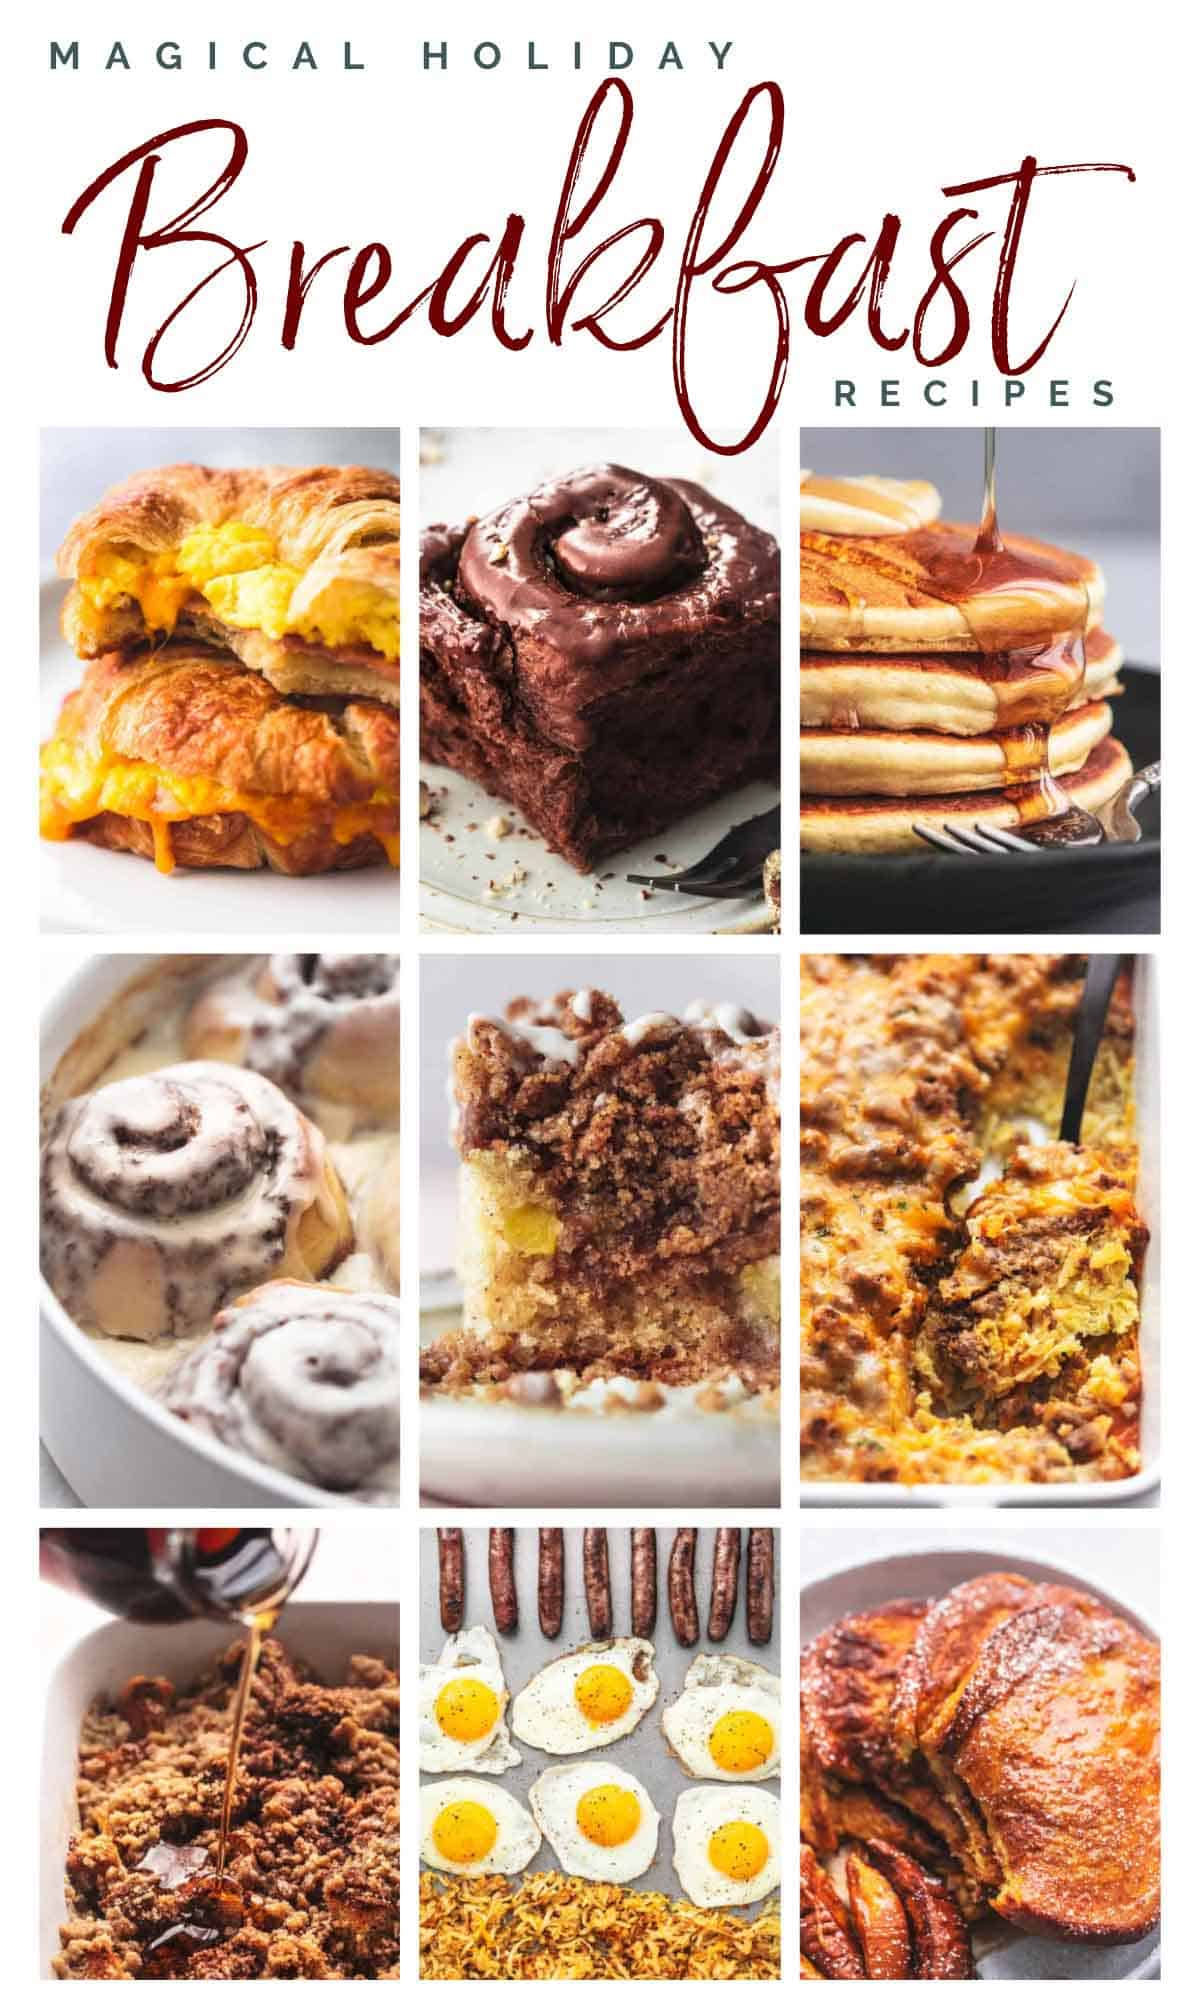 collage of nine images showing breakfast recipes